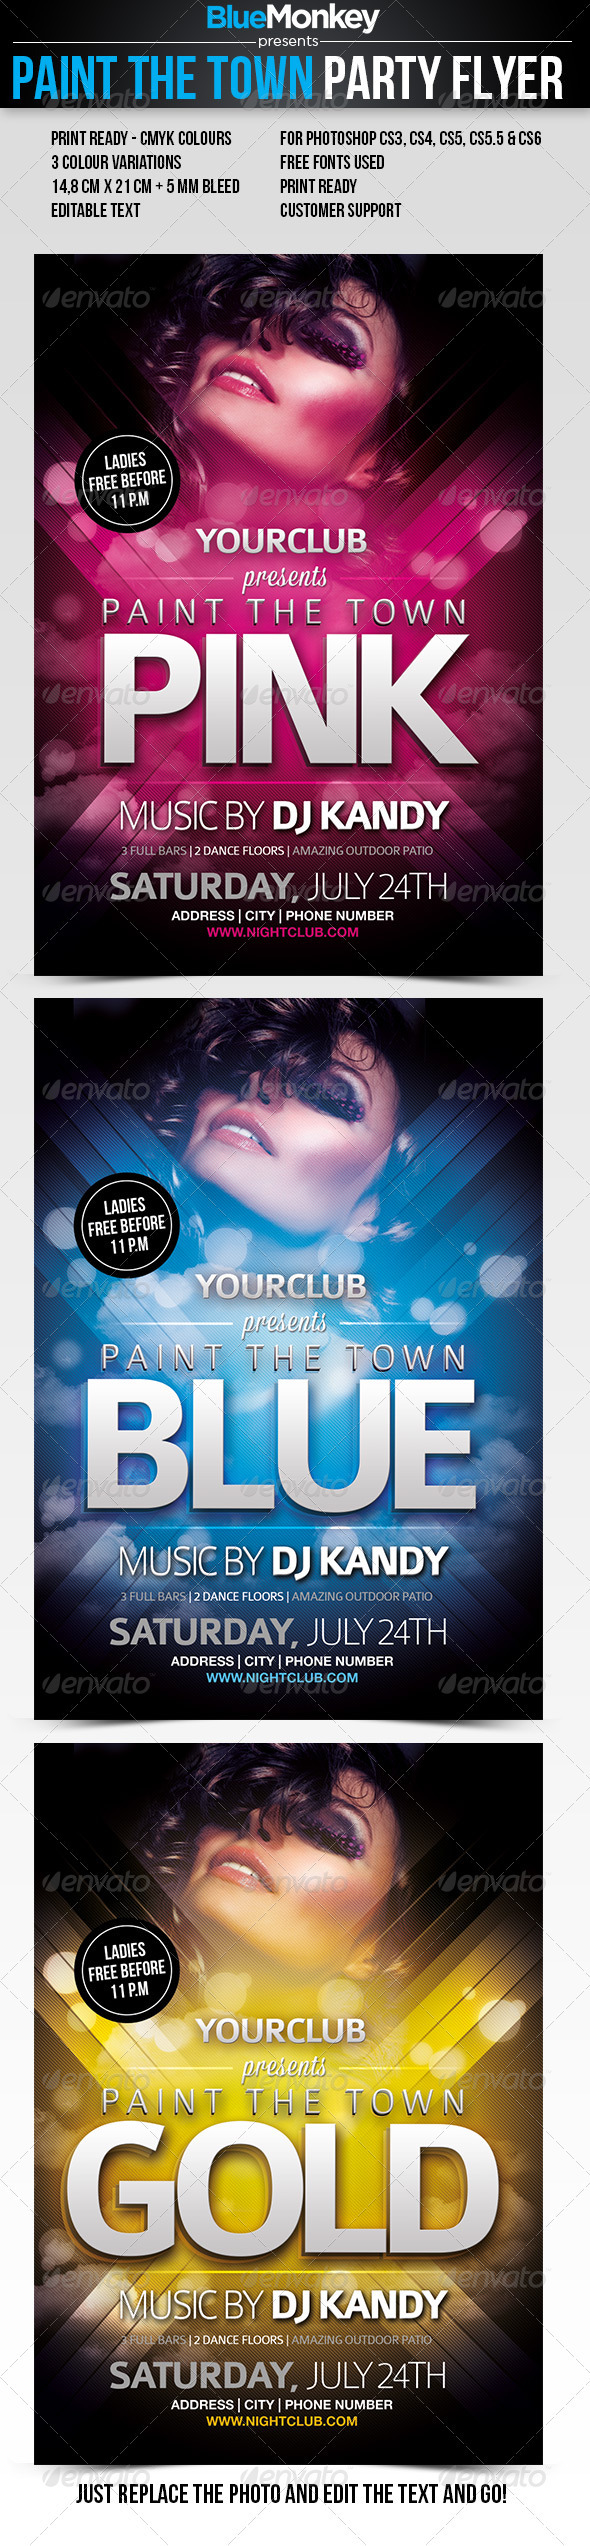 Paint The Town Party Flyer - Clubs & Parties Events